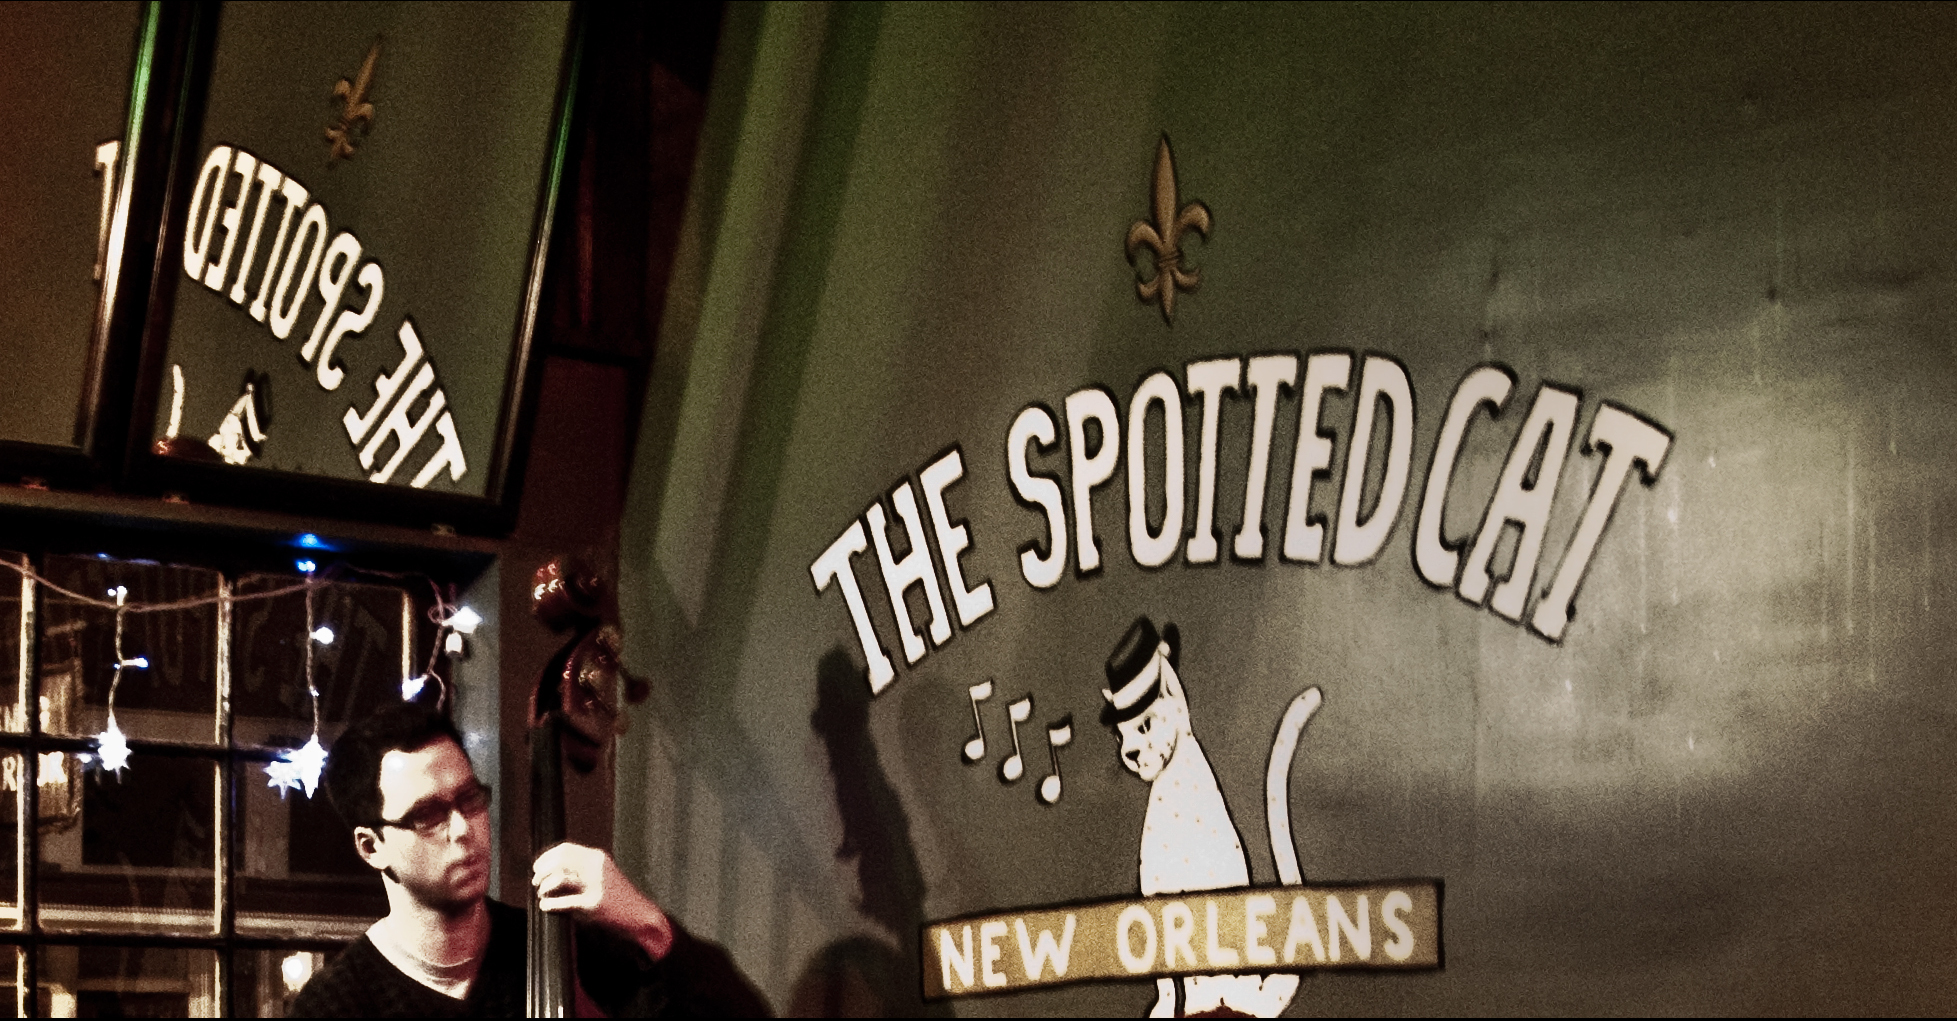 The Songbird of New Orleans Robin Barnes + The Fiya Birds - The Spotted Cat